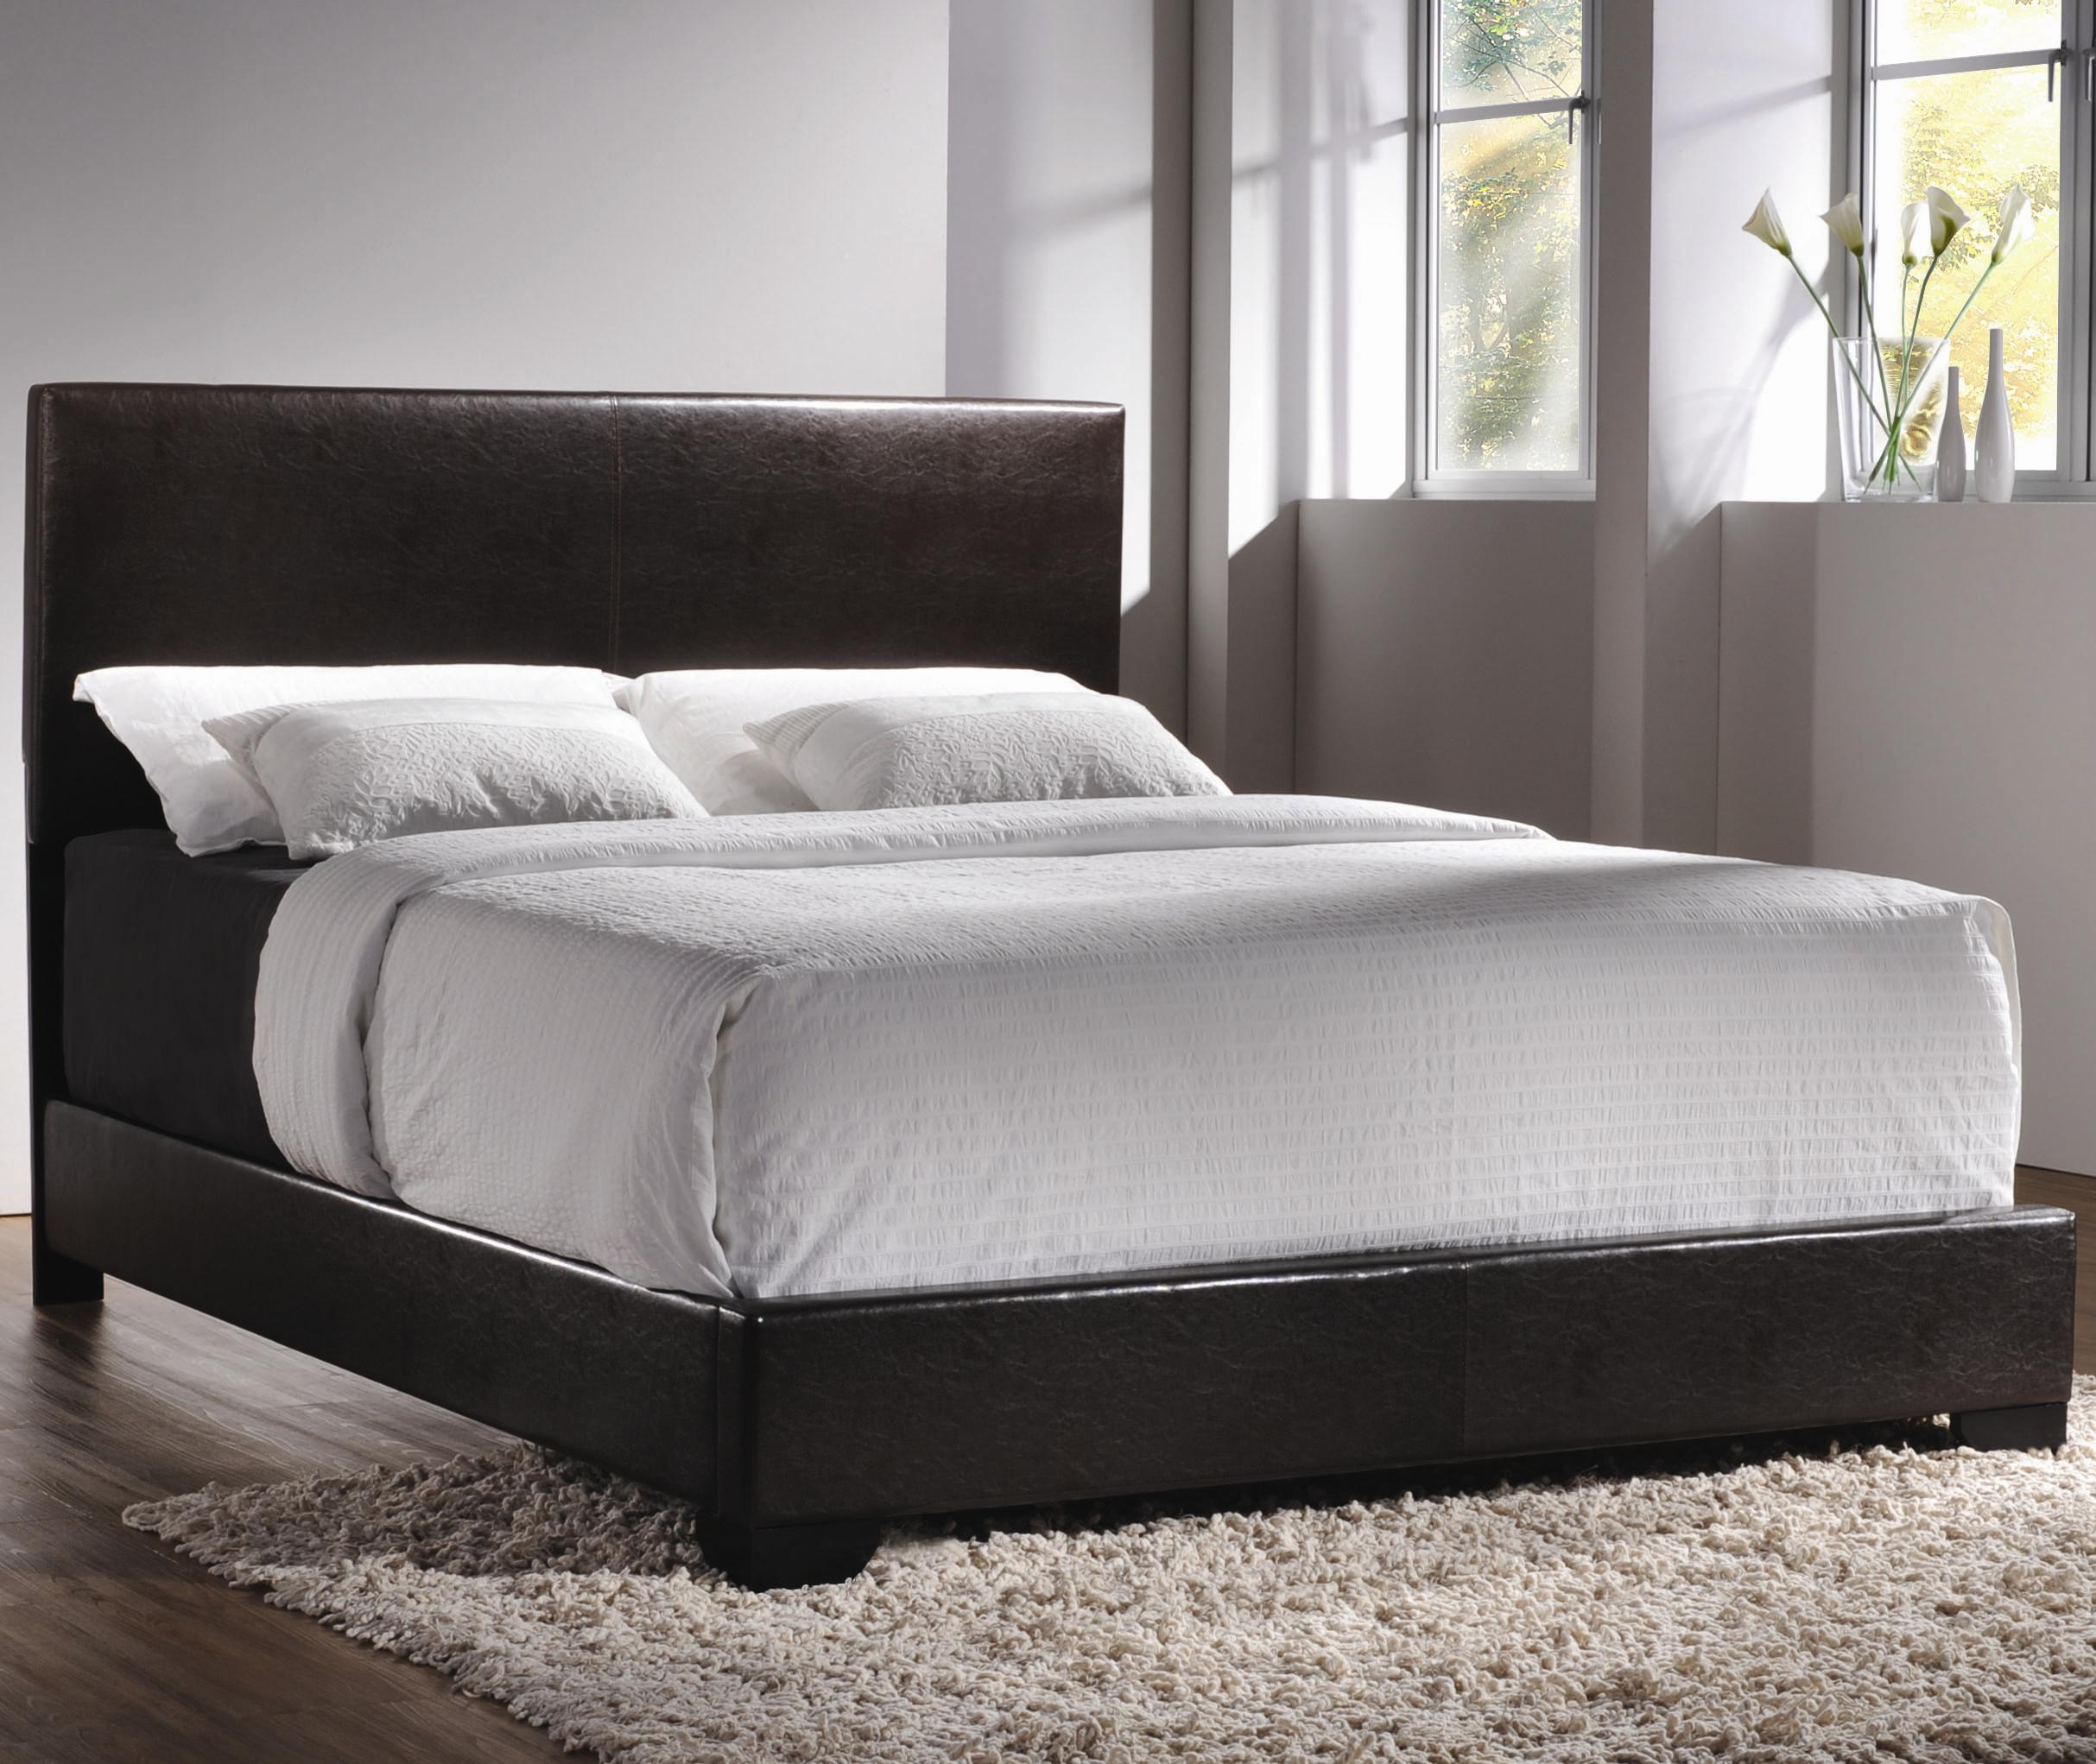 Coaster Upholstered Beds Queen Upholstered Low-Profile Bed - Item Number: 300261Q